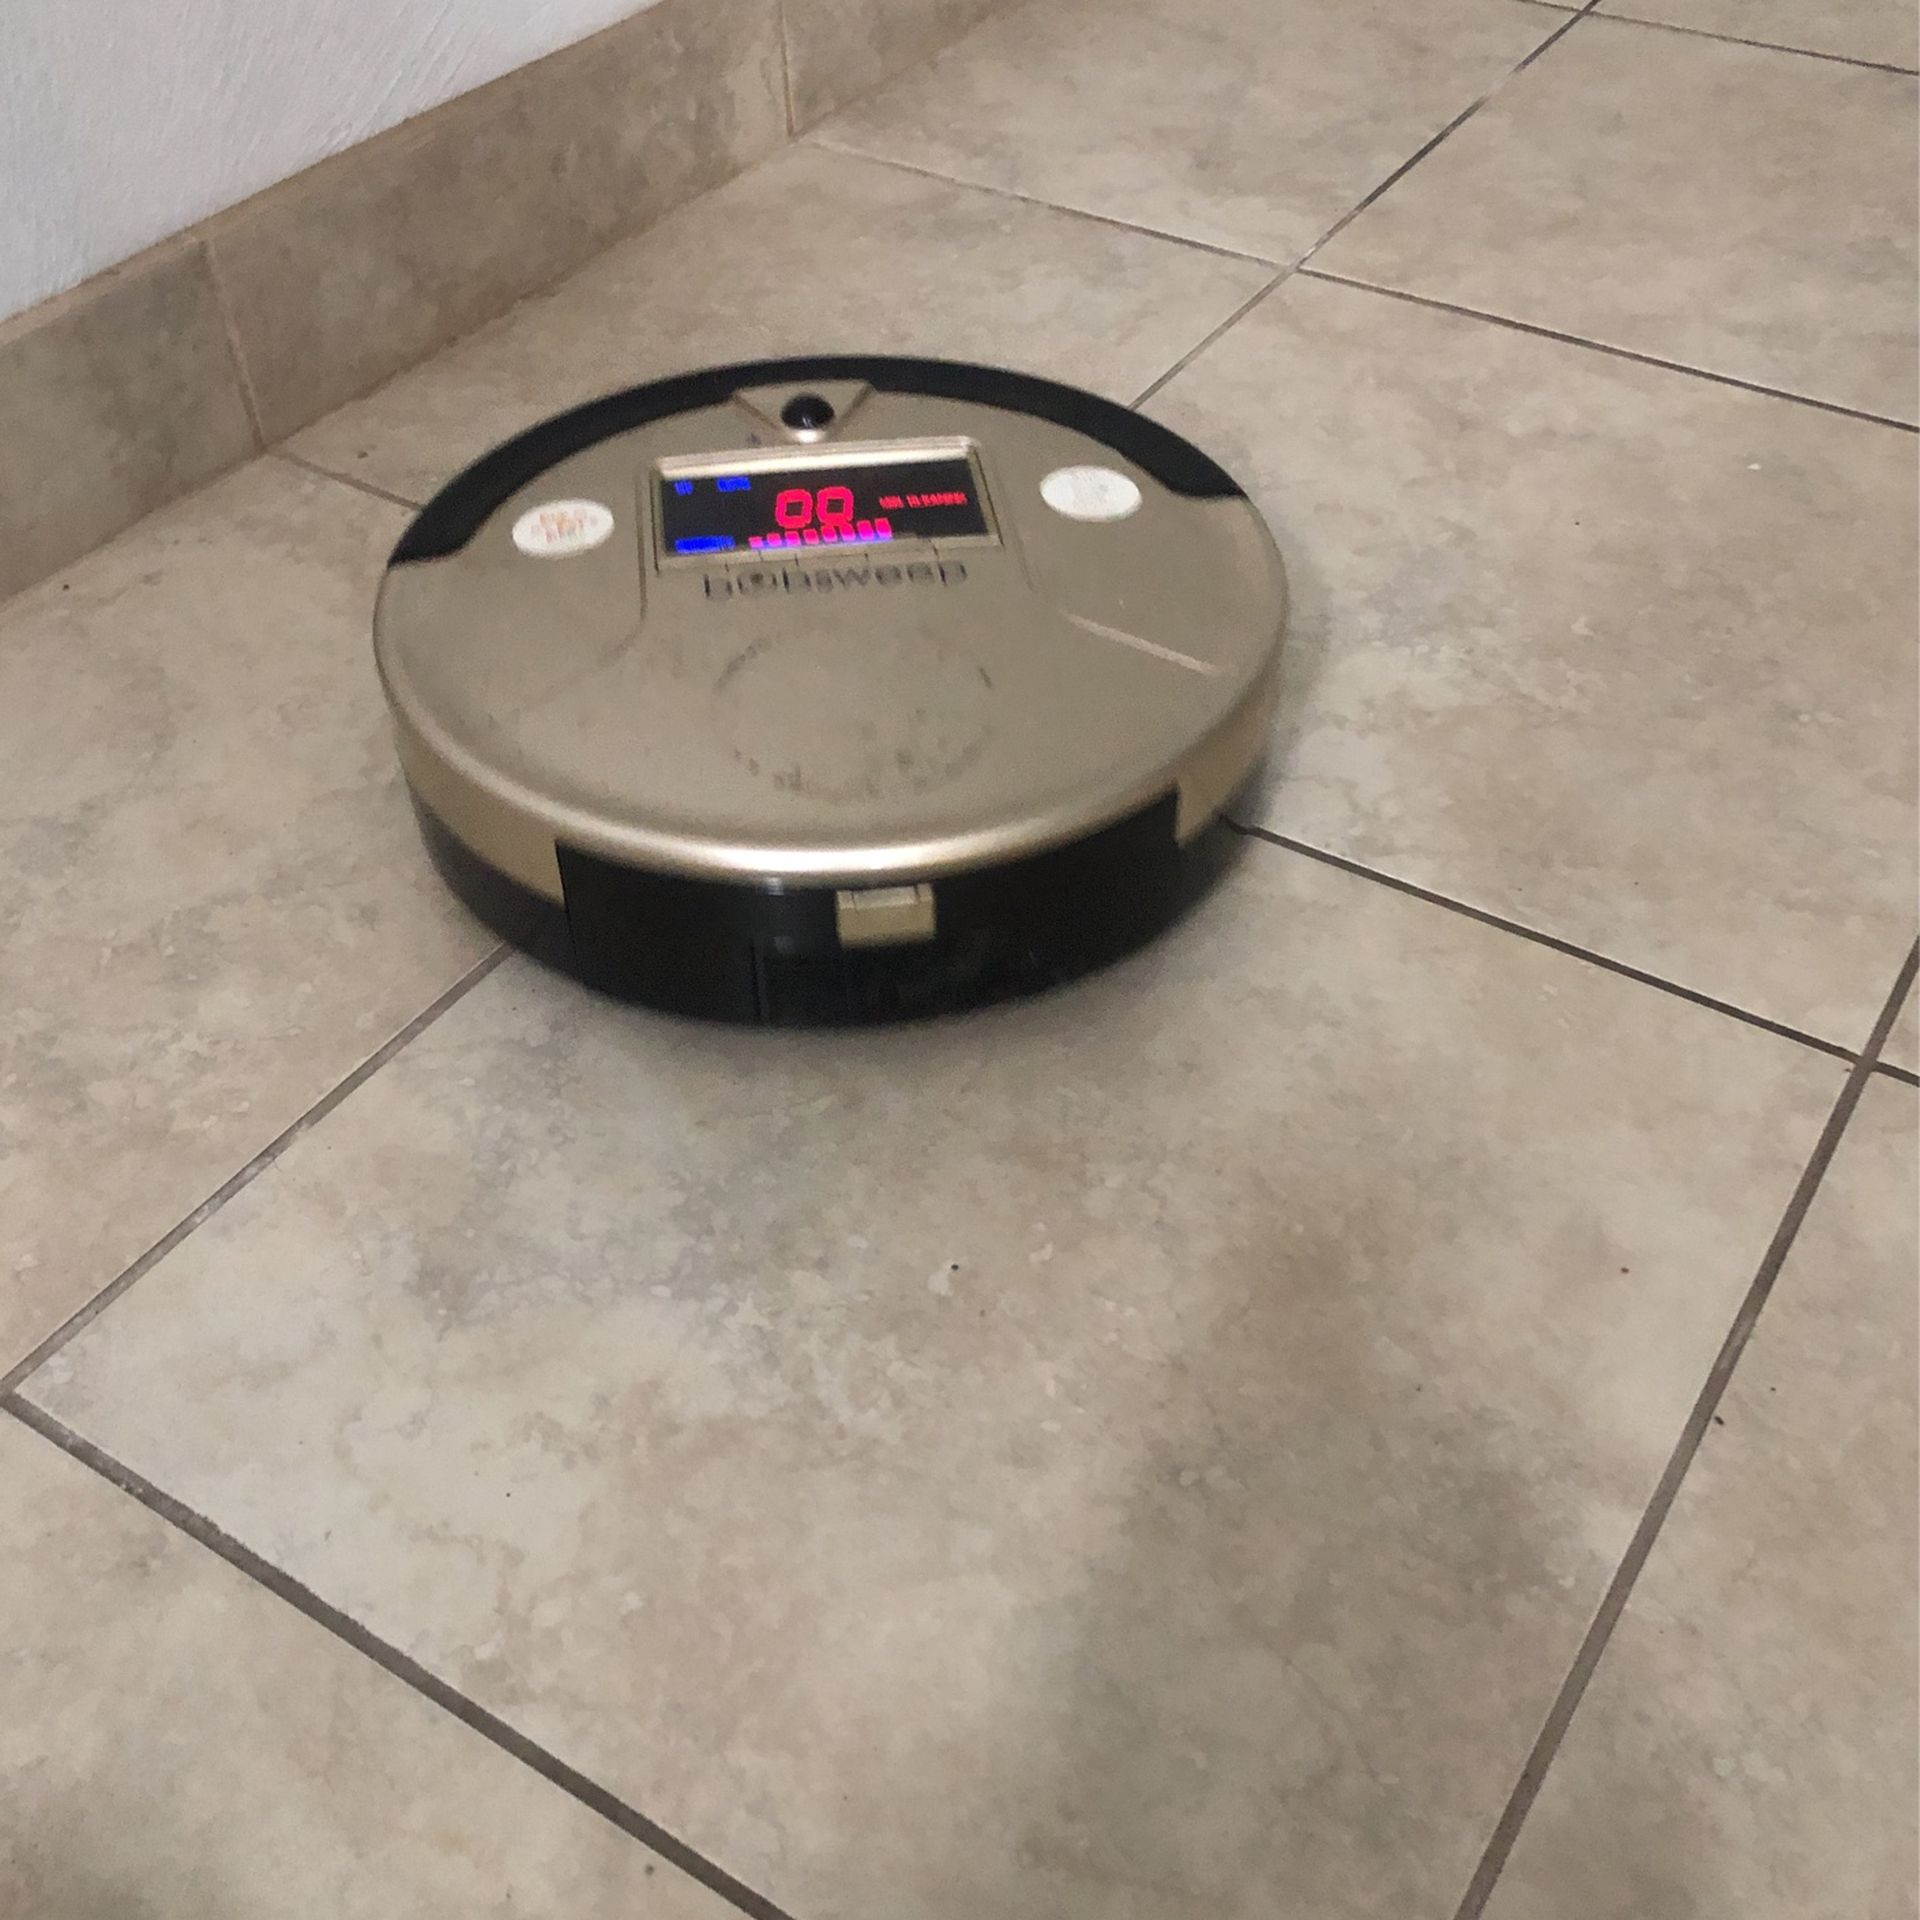 Bobsweep Automatic Robot Vacuum